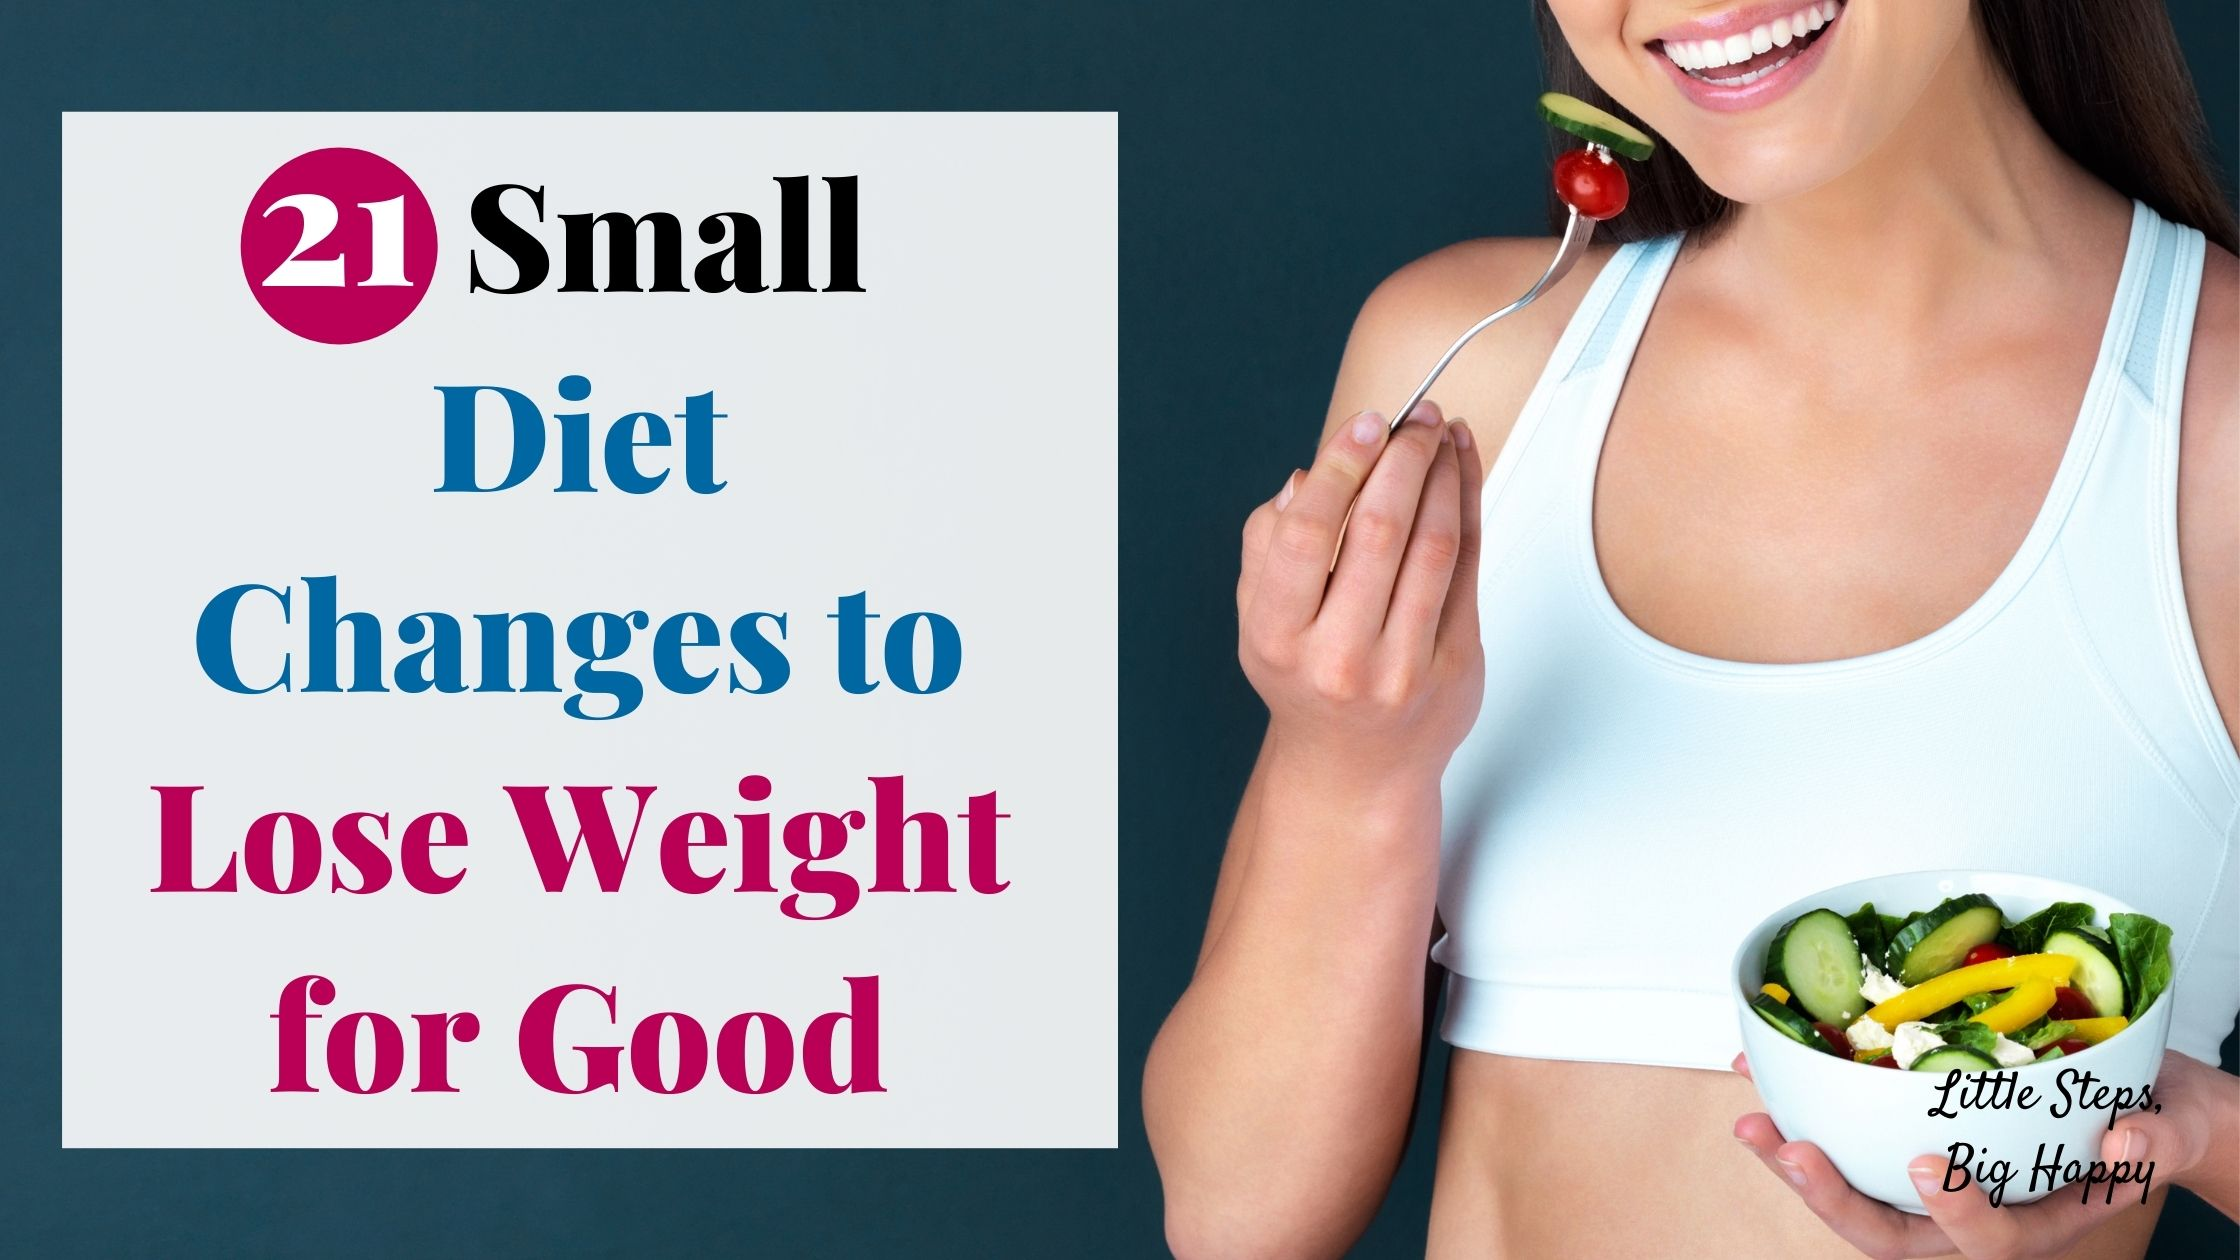 Woman eating a salad - 21 Small Diet Changes to Lose Weight for Good